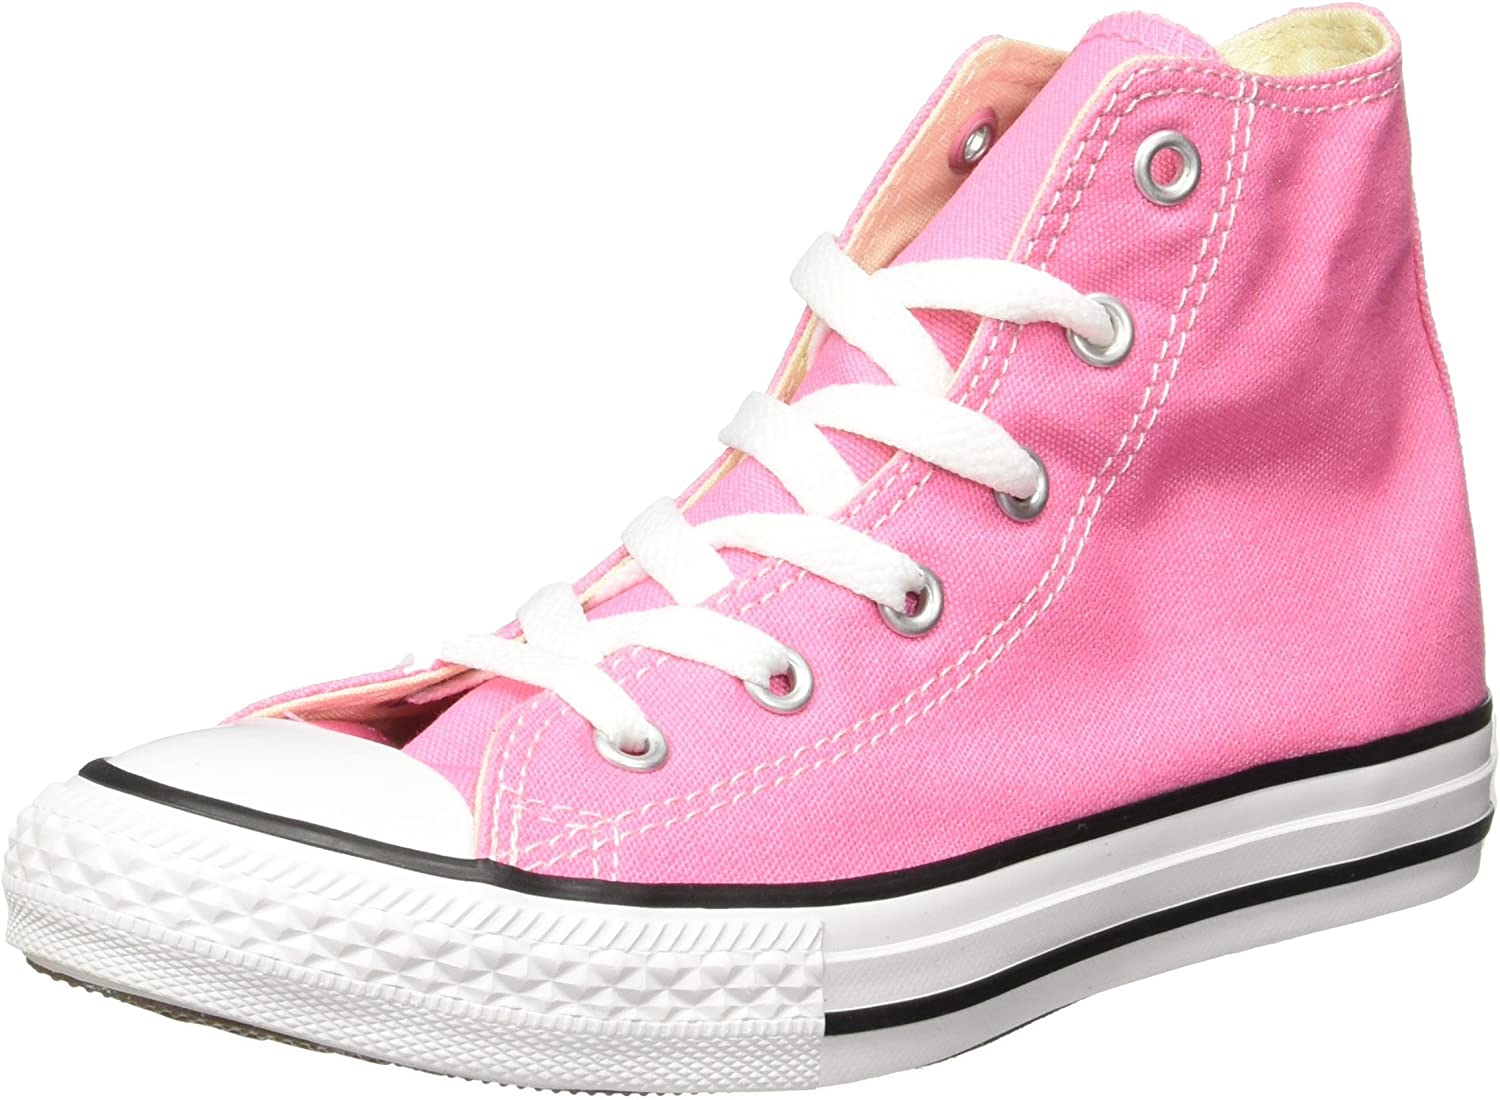 Converse Women's Chuck Taylor All Star Canvas High Top Sneakers